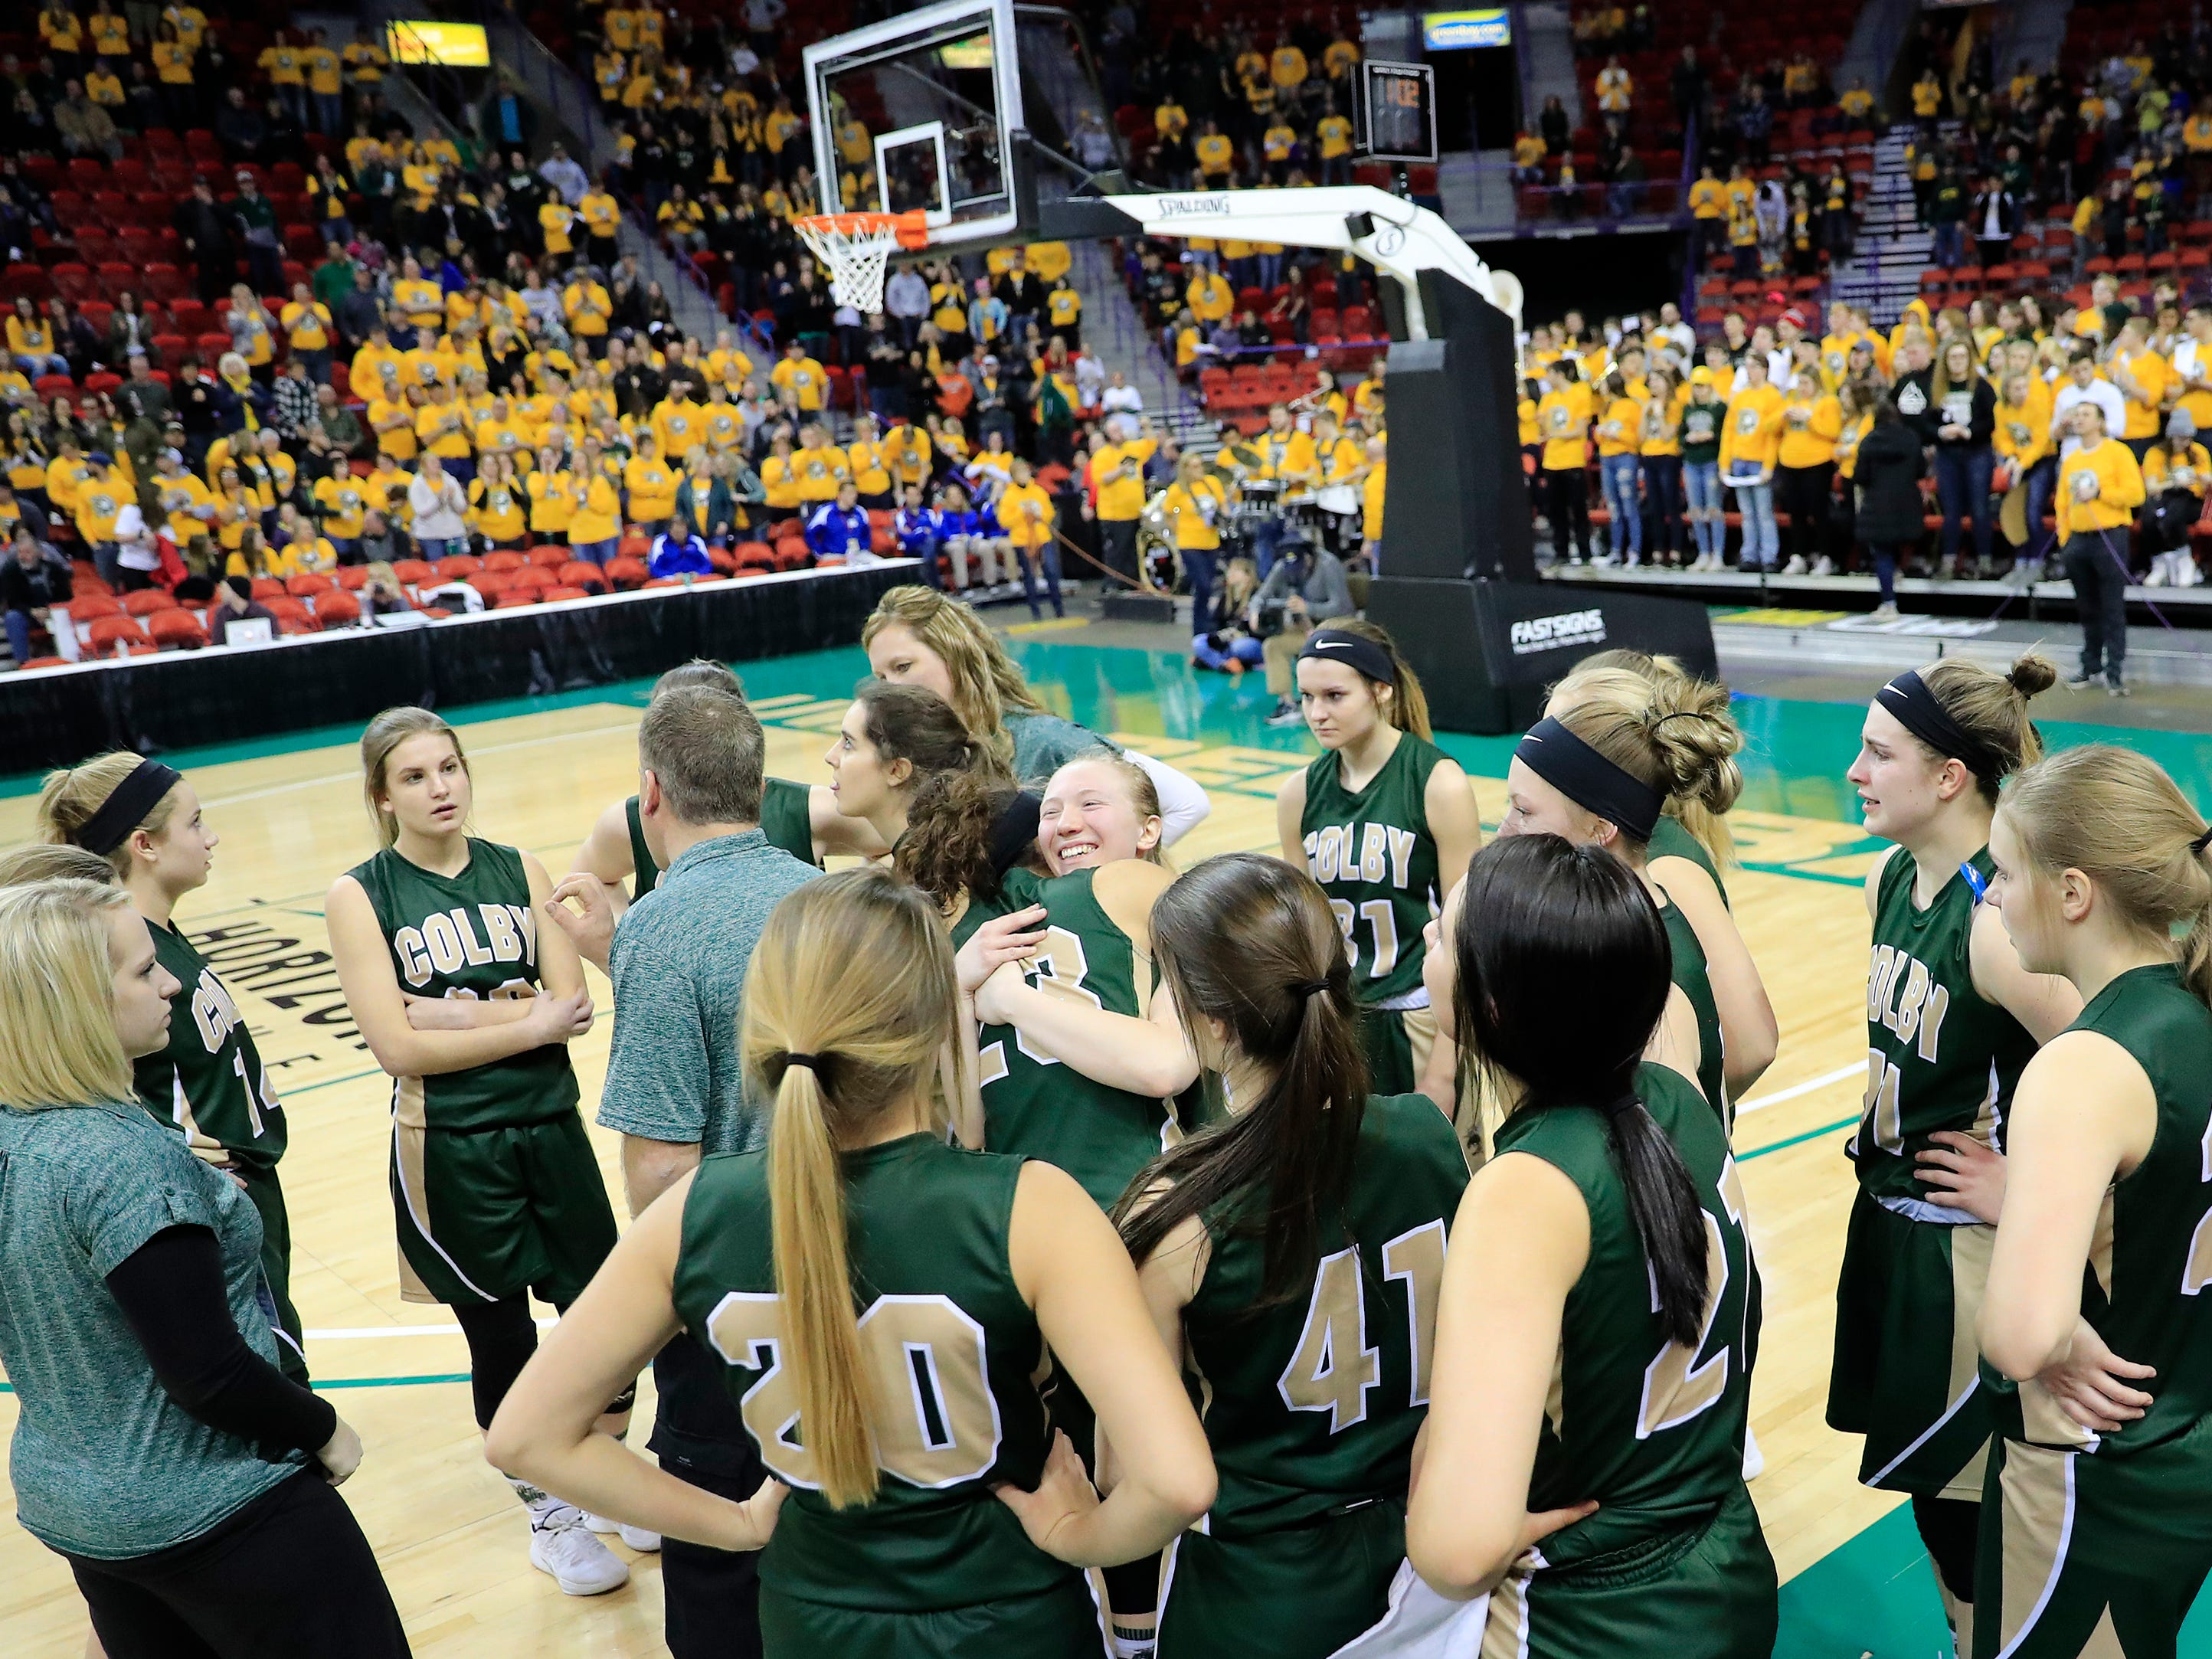 Colby players embrace during a timeout in the final minute against Melrose-Mindoro in a Division 3 semifinal at the WIAA state girls basketball tournament at the Resch Center on Thursday, March 7, 2019, in Ashwaubenon, Wis.